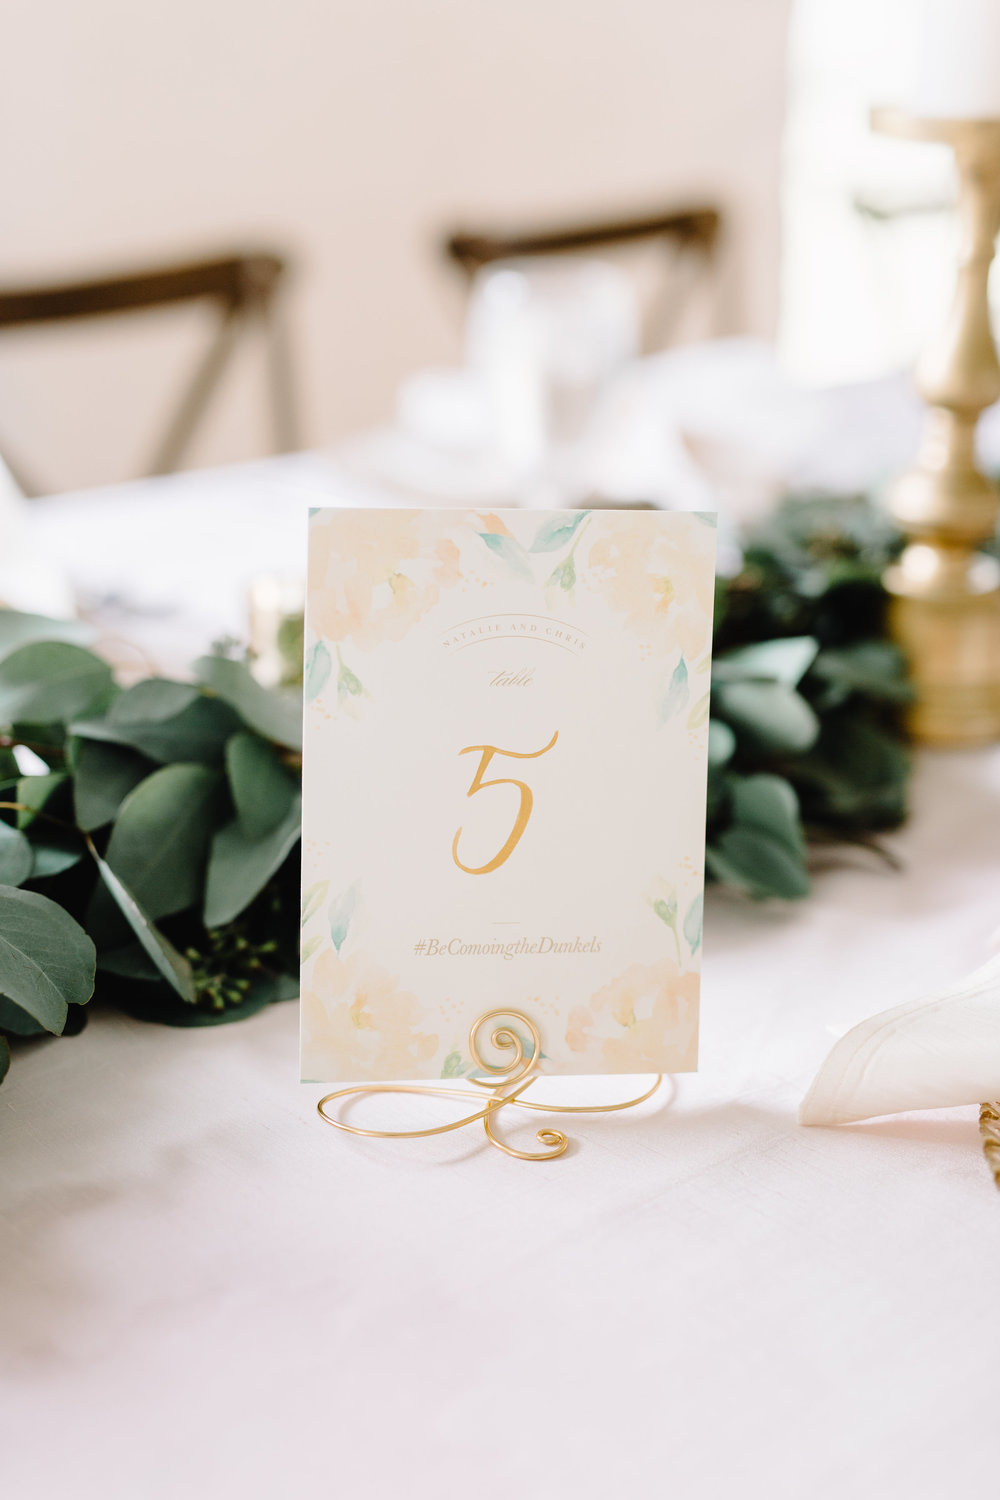 Blush & Gold Wedding with Minted Table Numbers at Cypress Grove Estate House  Orlando Wedding Florist Bluegrass Chic  Orlando Wedding Planner Blue Ribbon Weddings  Orlando Wedding Photographer JP Pratt Photography  Wedding Ceremony at Cypress Grove Estate House  Tented Lakeside Wedding Reception at Cypress Grove Estate House